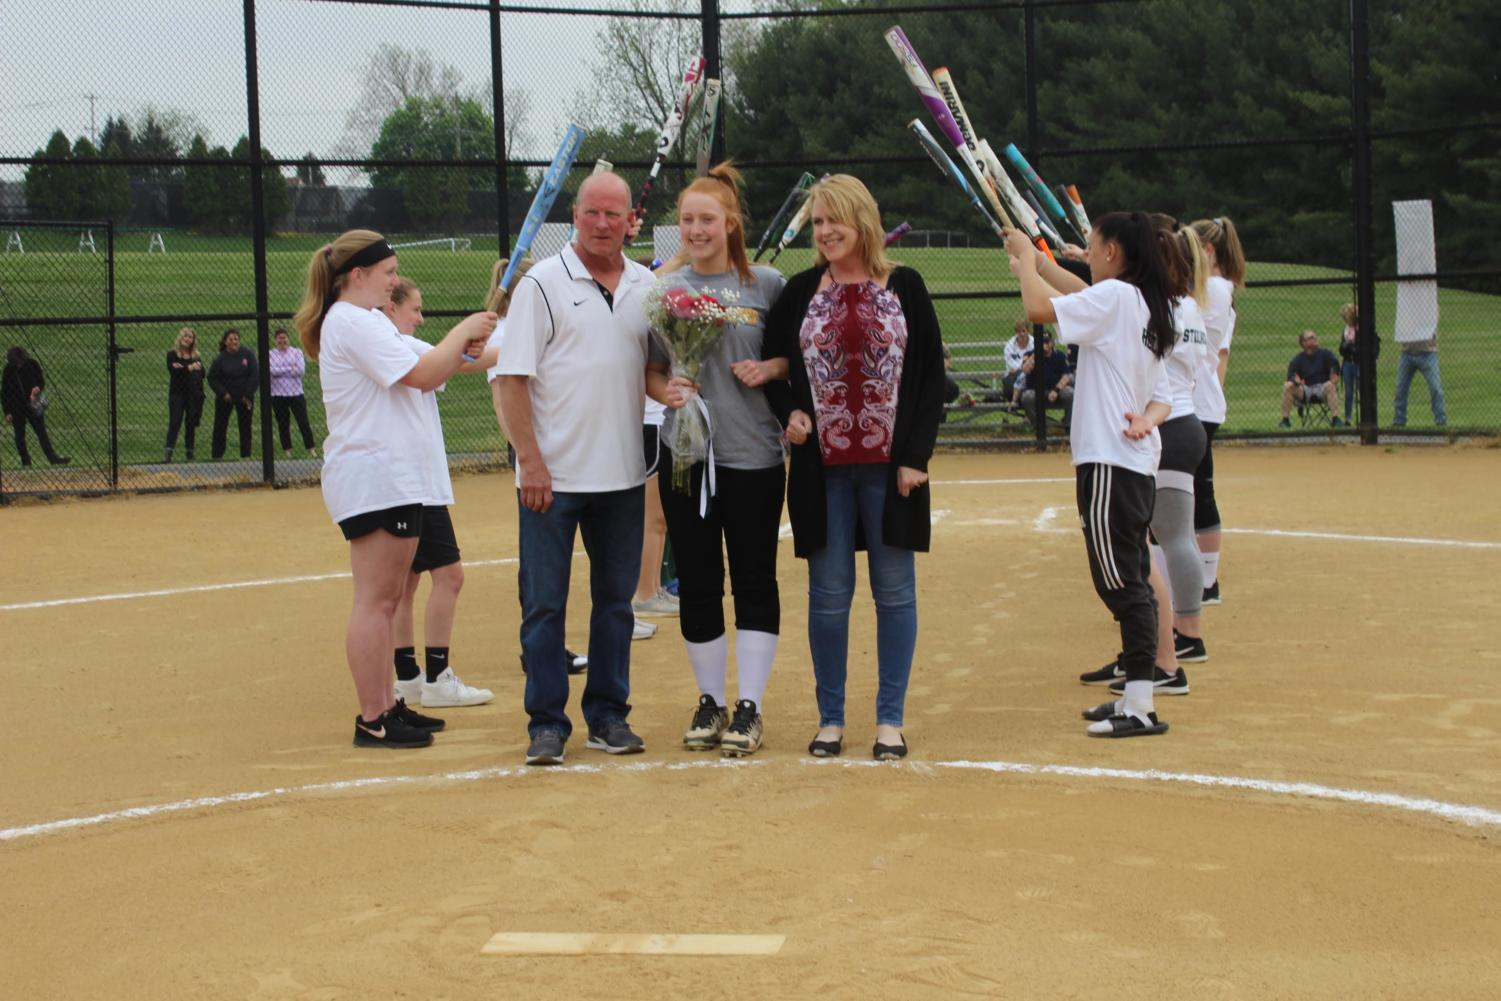 Sara+Markley+walks+with+her+parents+past+the+pitcher%27s+mound.%0A